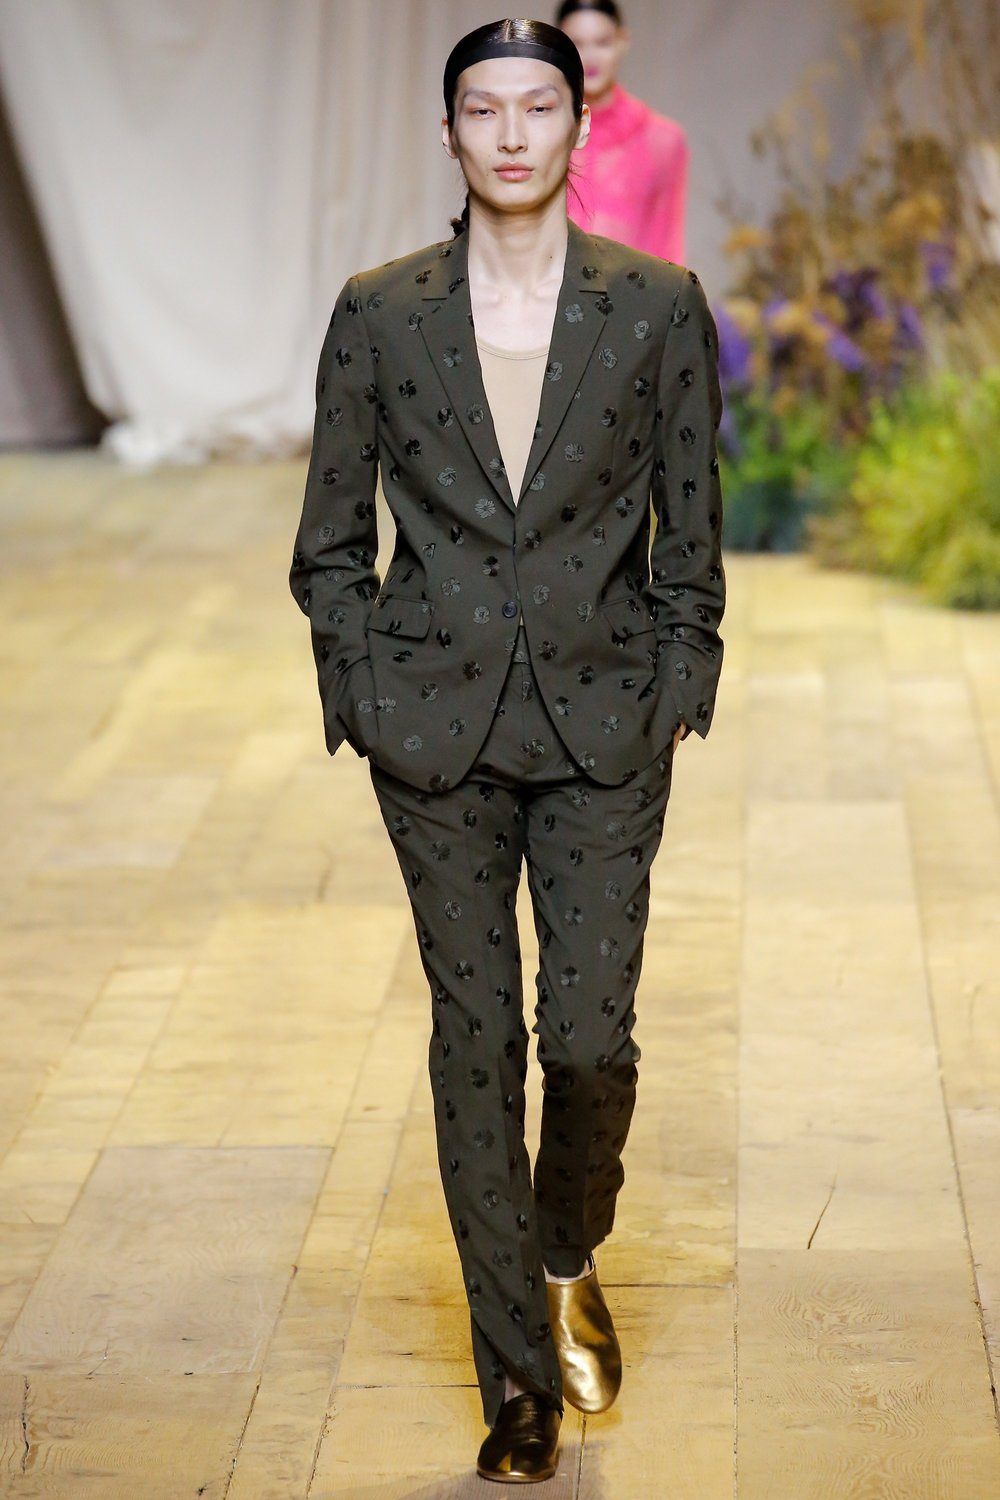 h&m-studio-green-suit.jpg